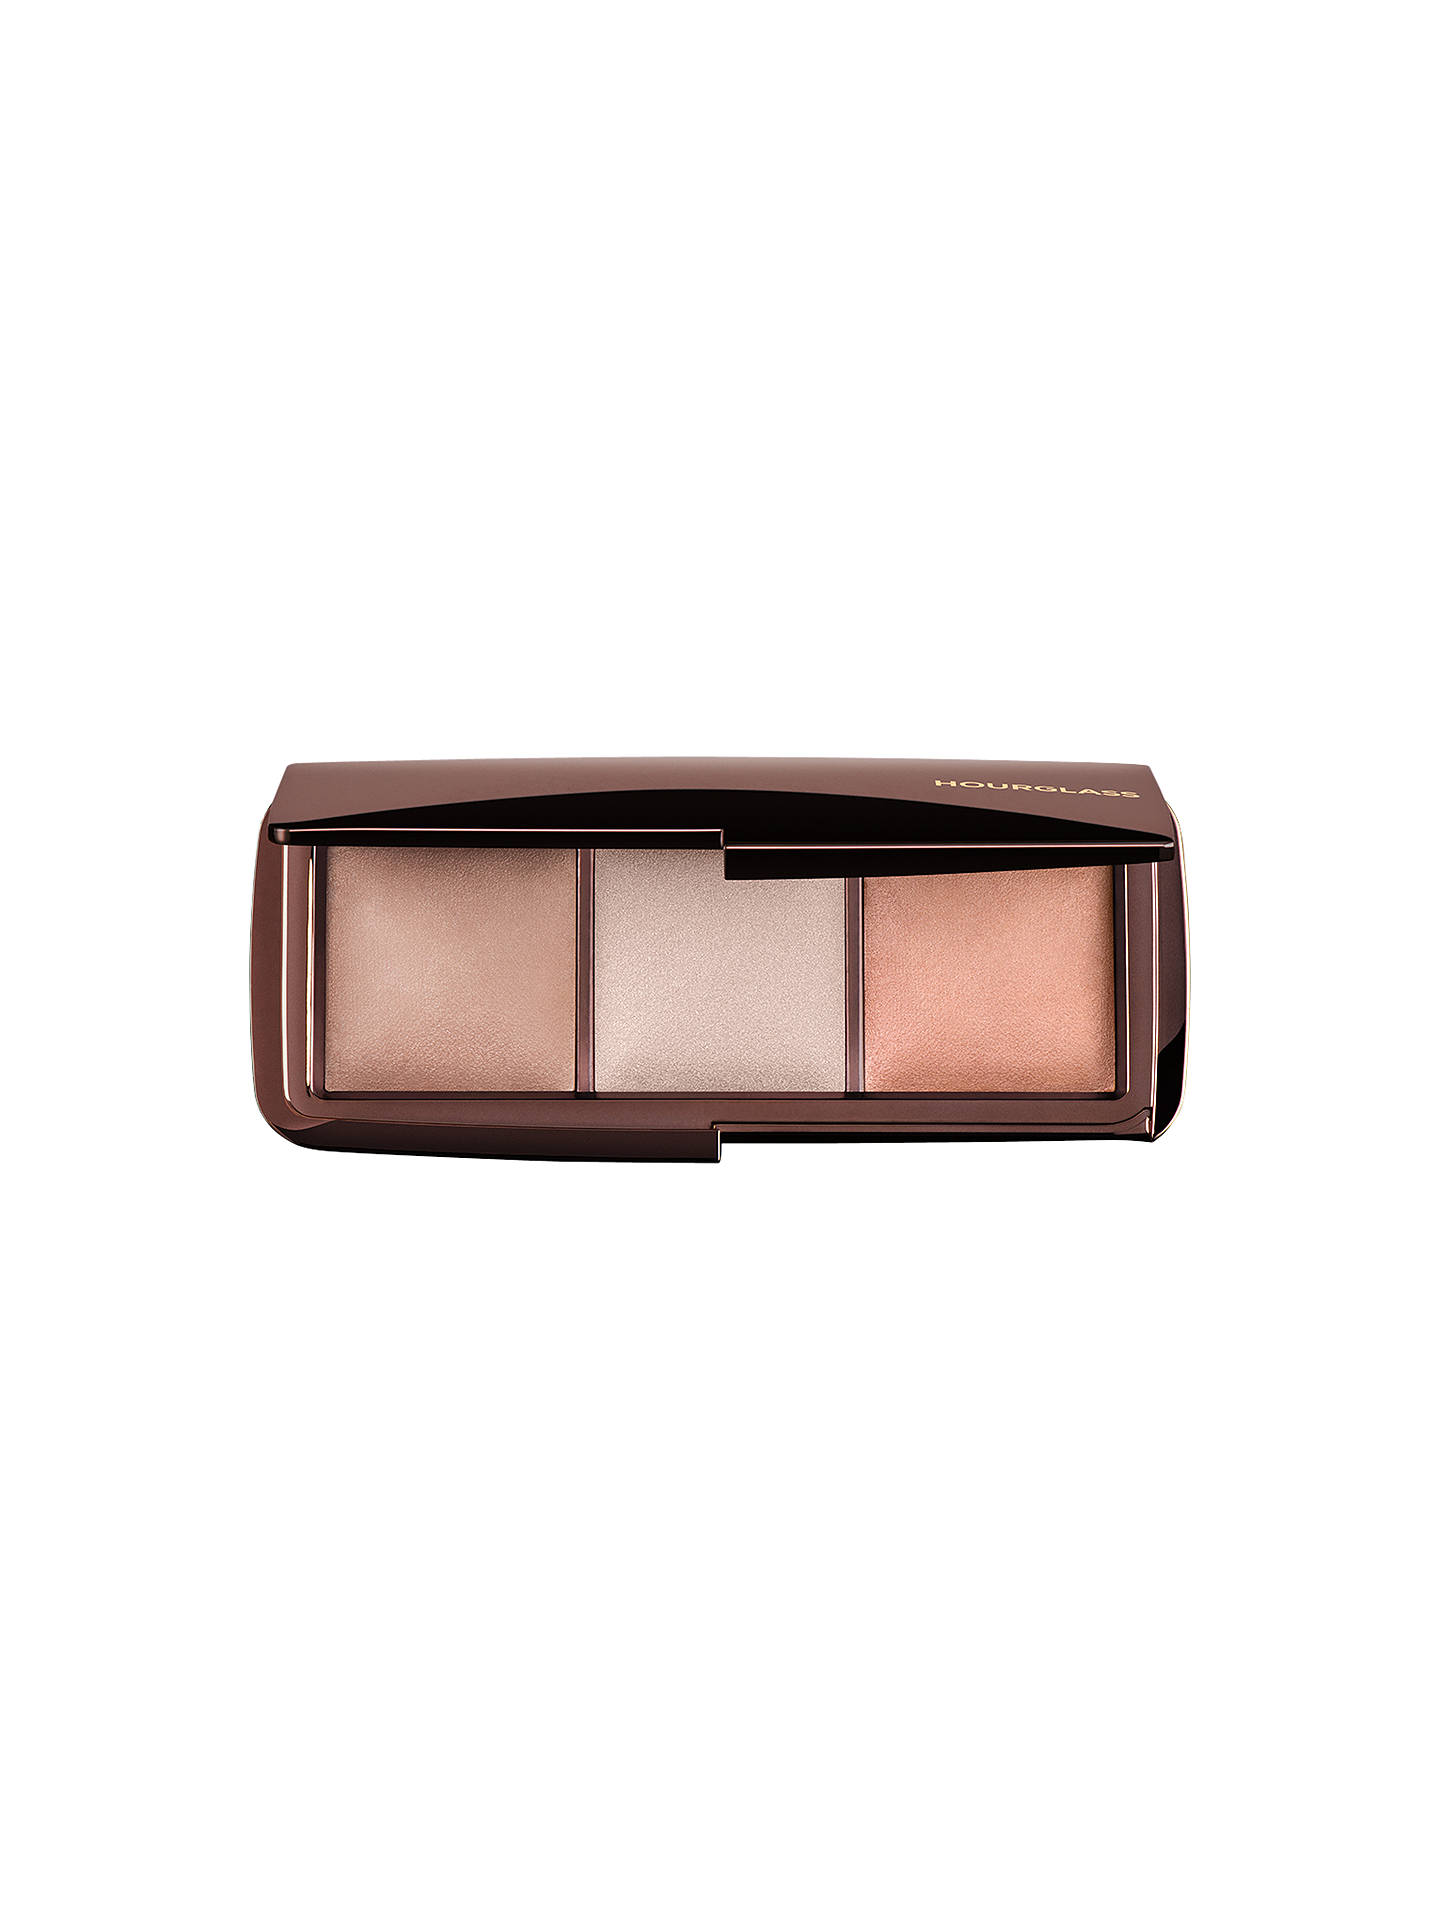 BuyHourglass Ambient Light Powder Palette Online at johnlewis.com